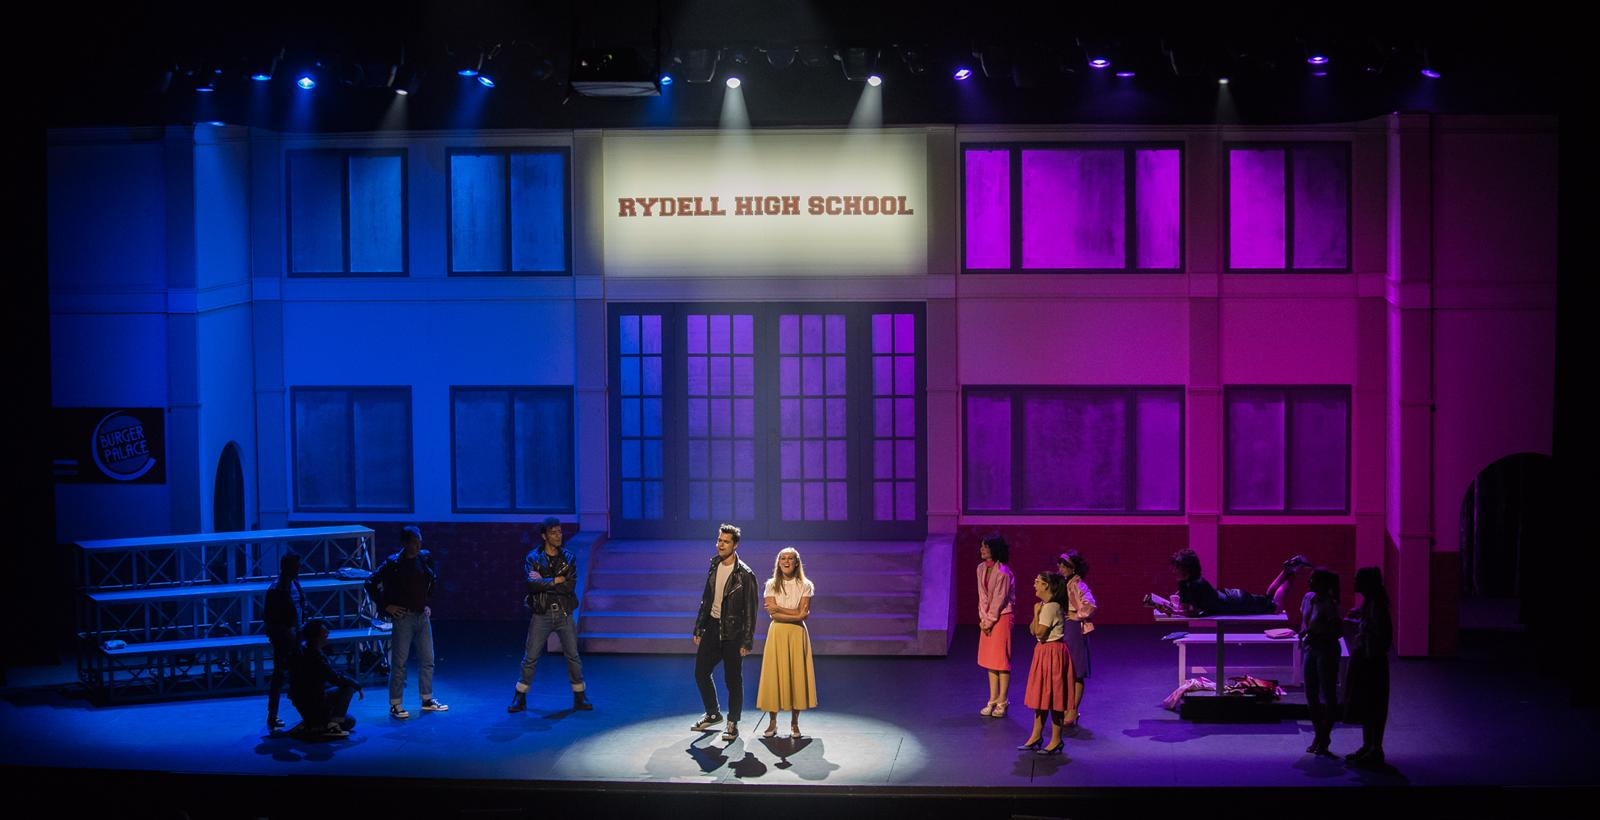 """<span  class=""""uc_style_uc_tiles_grid_image_elementor_uc_items_attribute_title"""" style=""""color:#ffffff;"""">Ana Paula Rocha - Teatro - Grease - Setembro 2018 - 004</span>"""